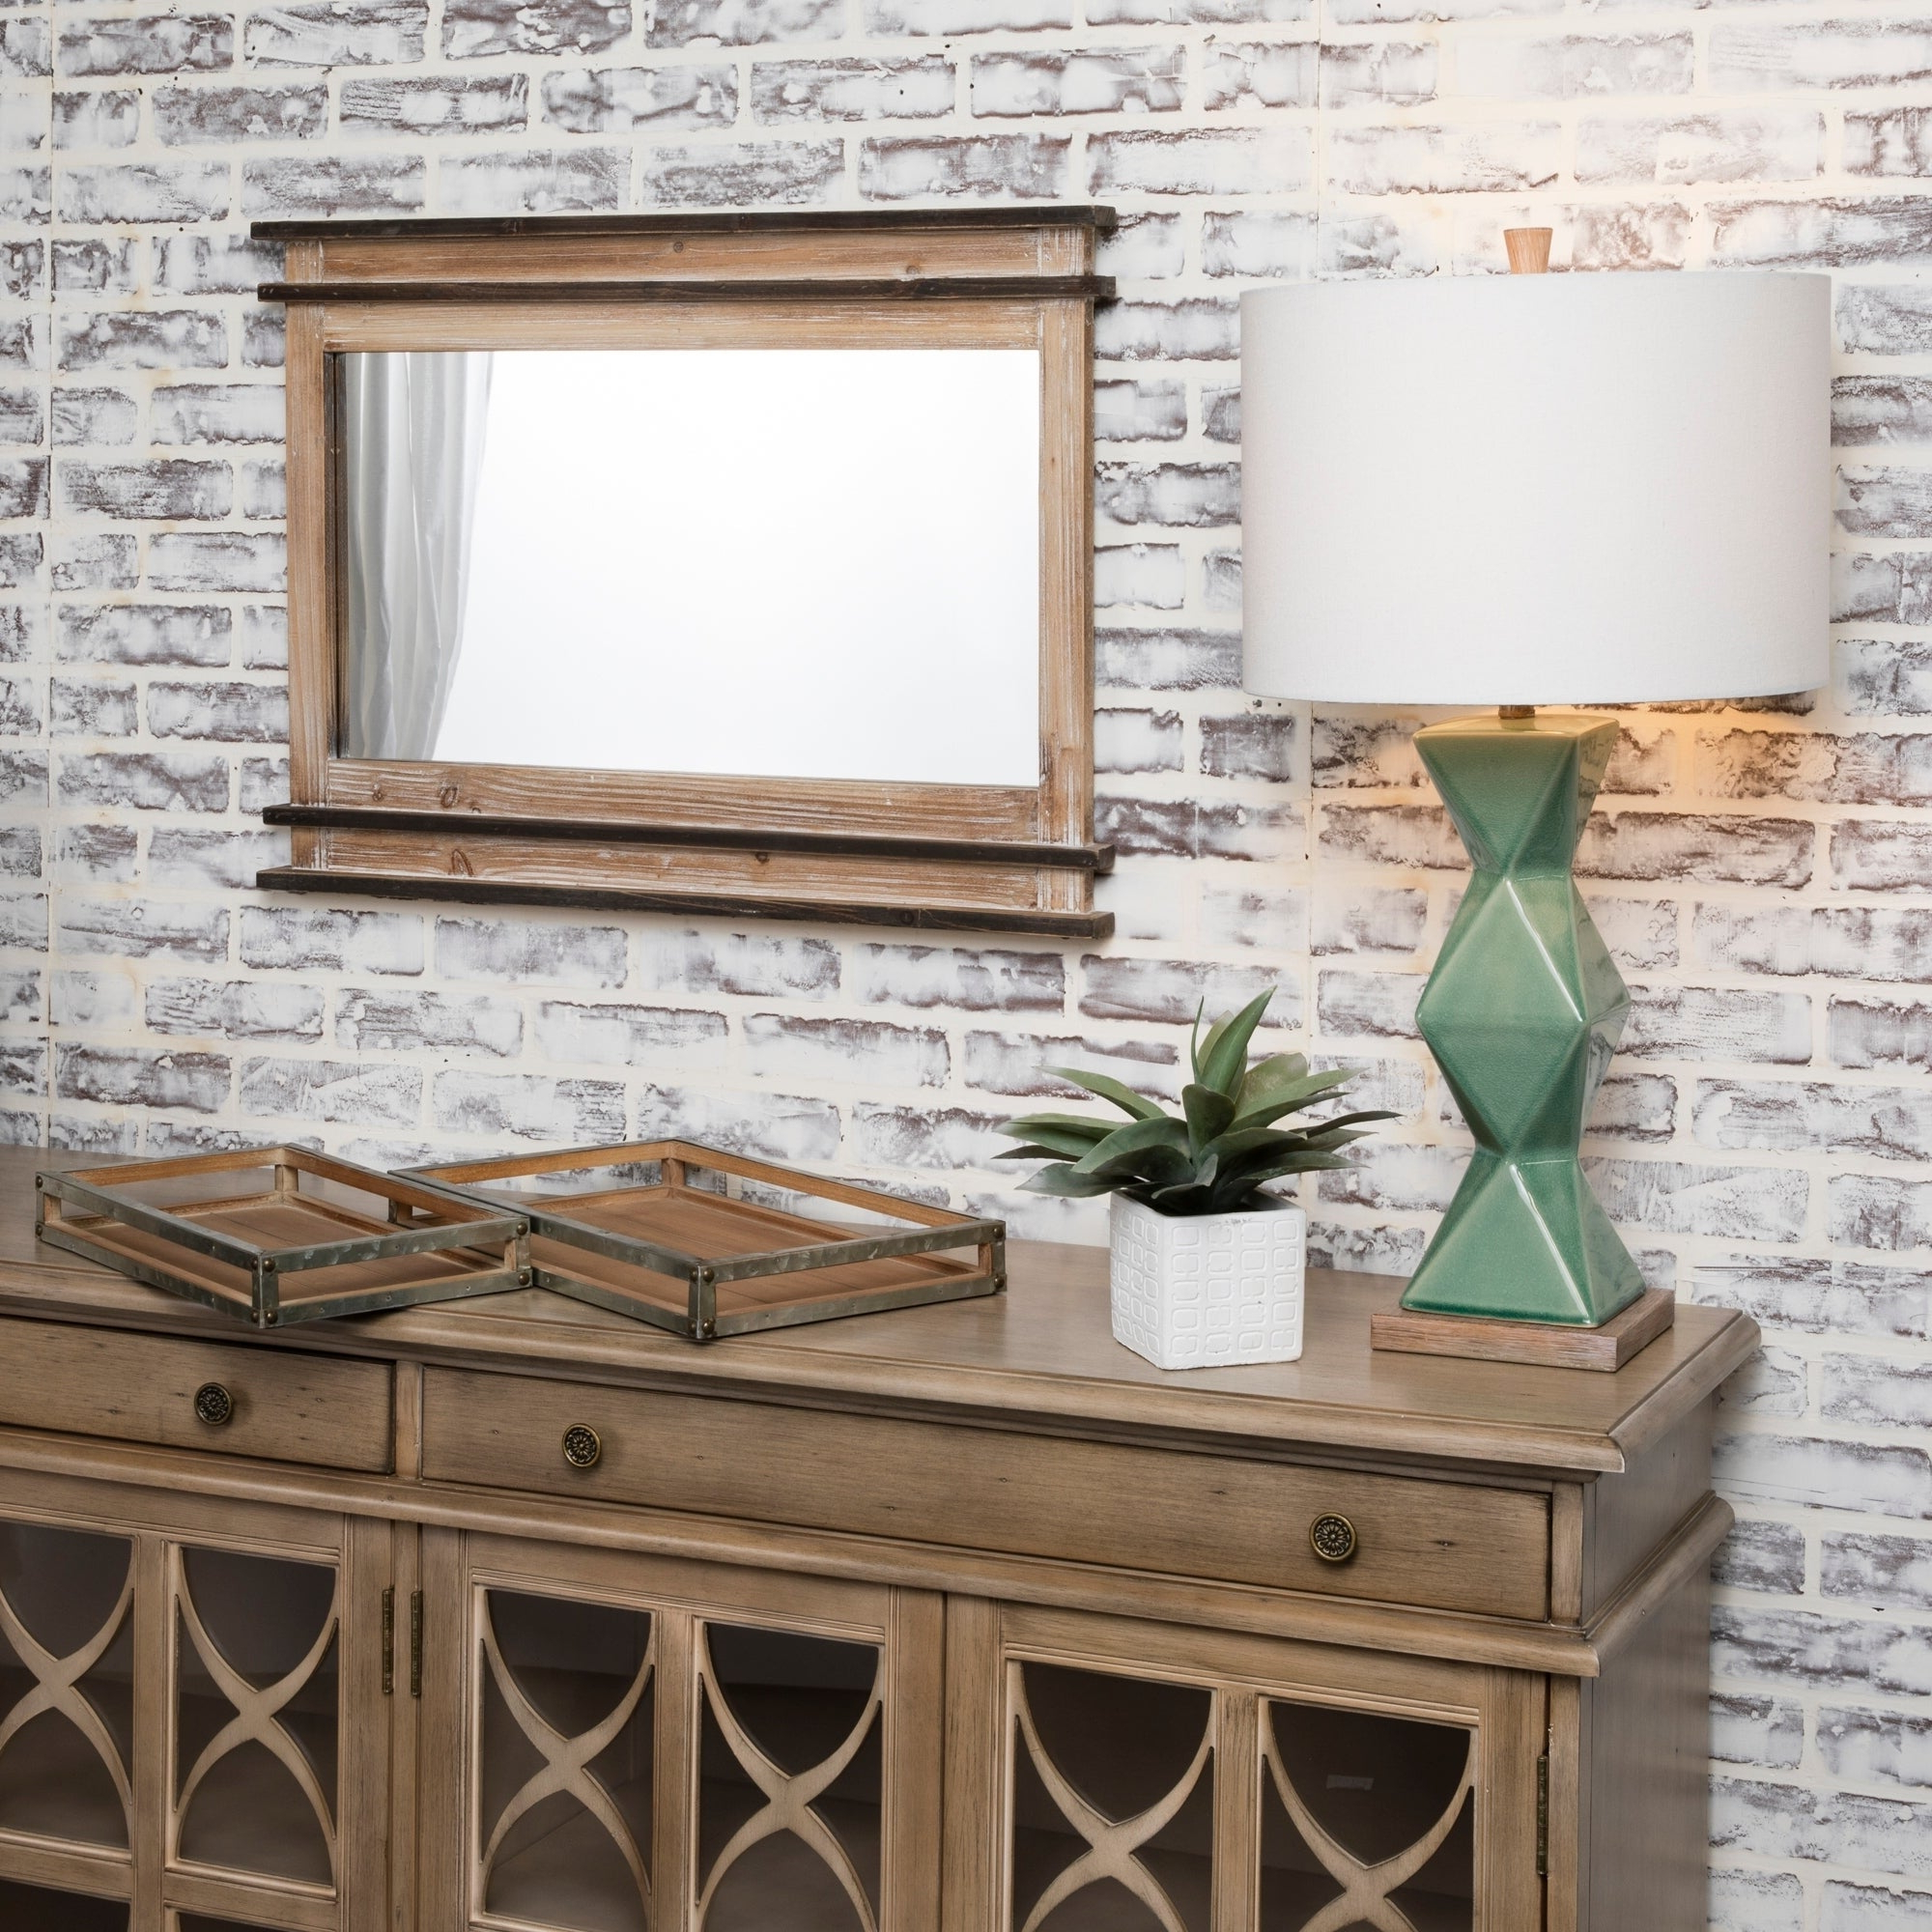 Mantle Reflection Natural Wood Horizontal Wall Mirror – A/n Inside Favorite Horizontal Wall Mirrors (View 10 of 20)